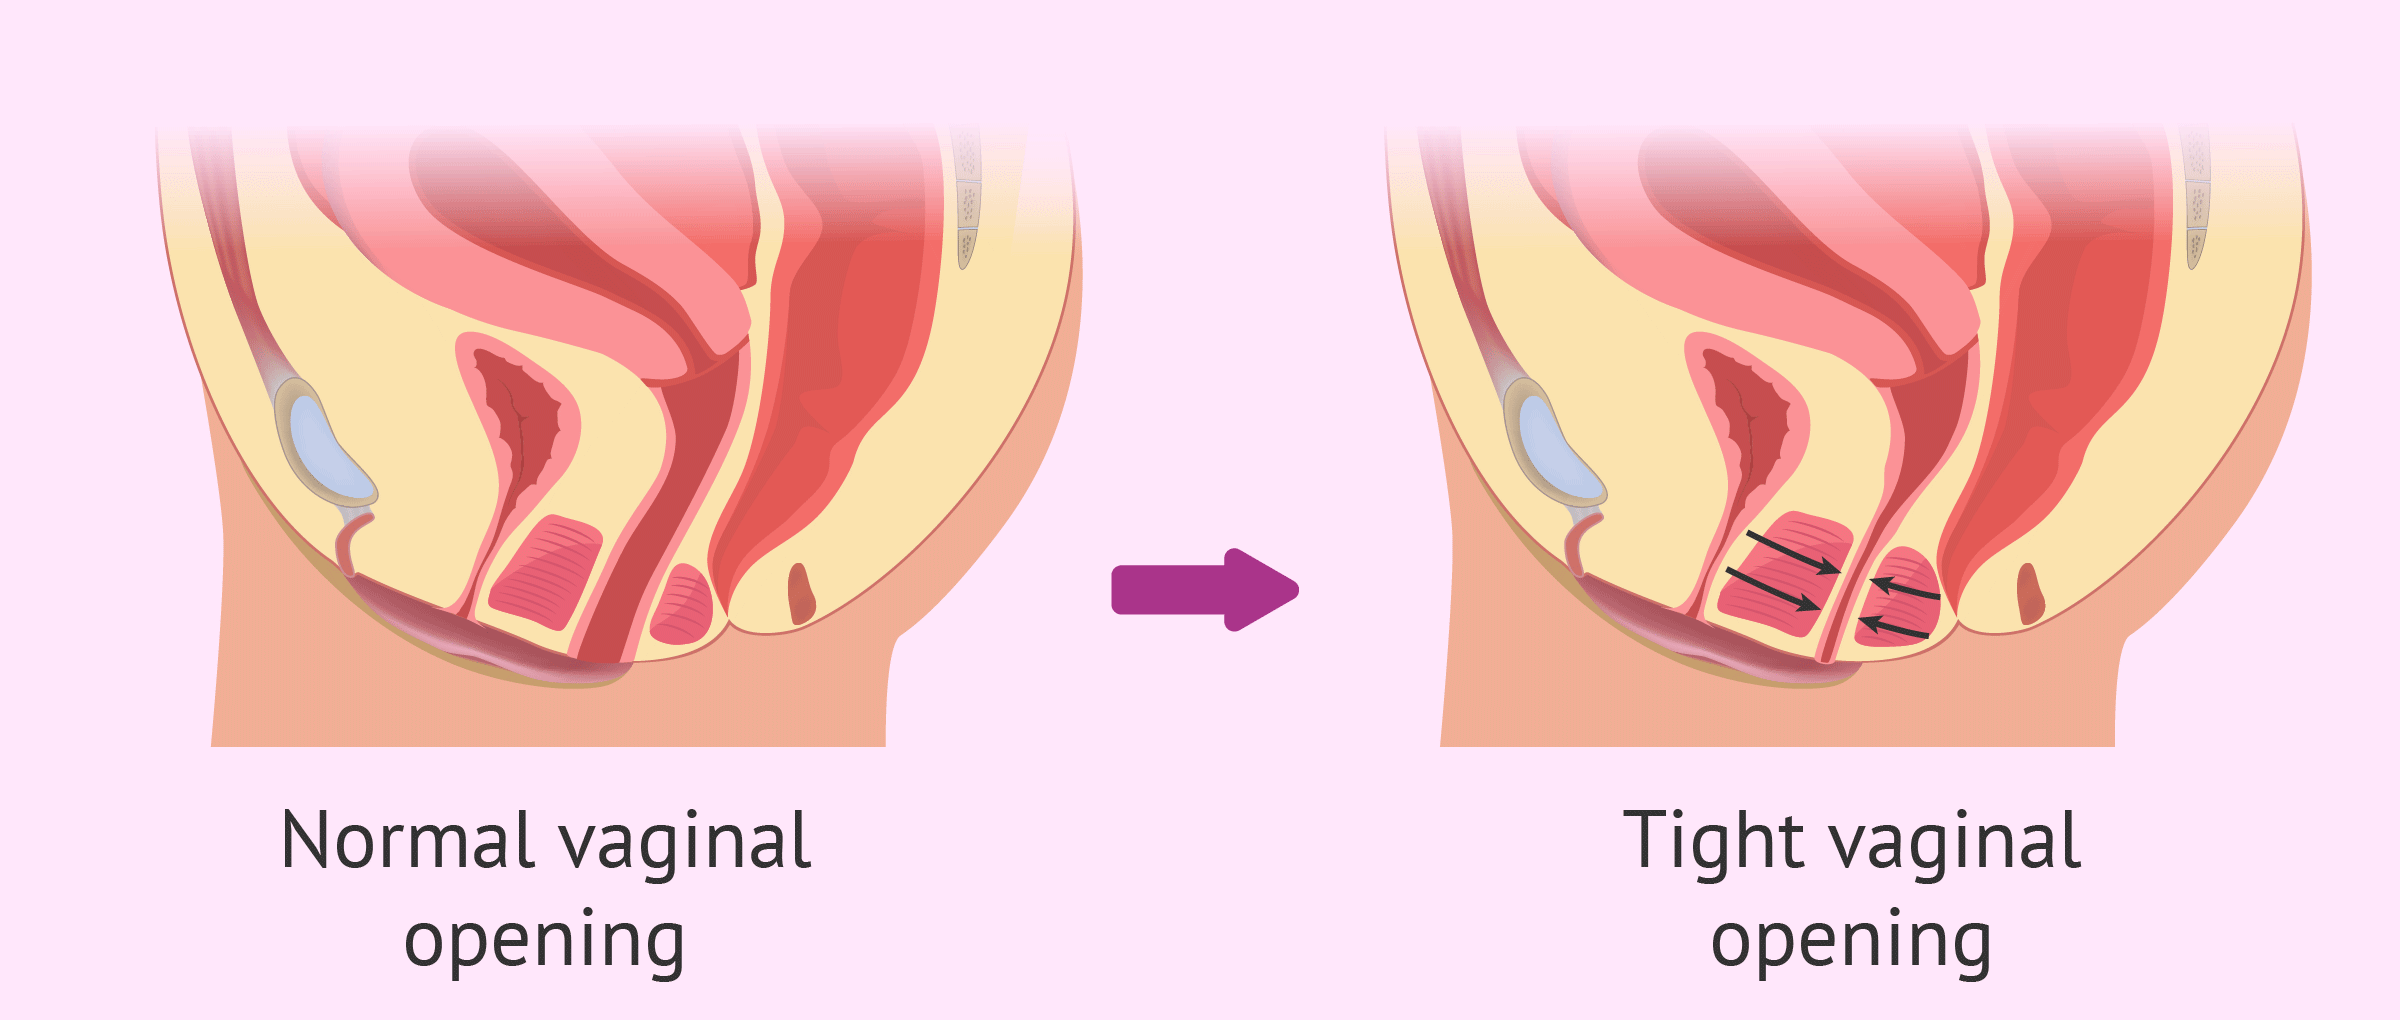 Referred pain when attempting sexual relations